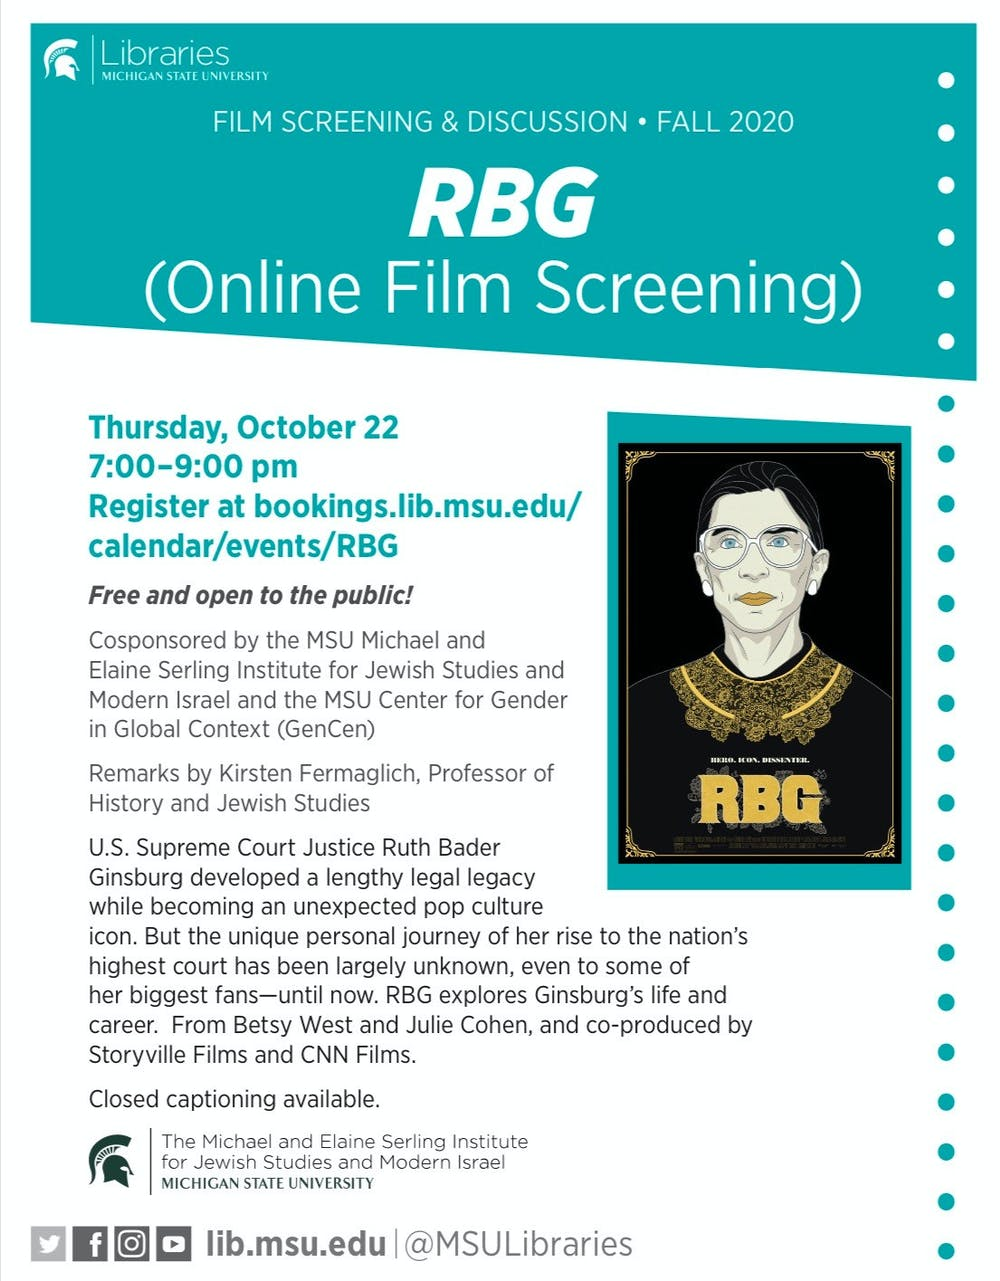 Flyer for RBG film screening on Thursday, Oct. 22 (Photo courtesy of MSU Library).